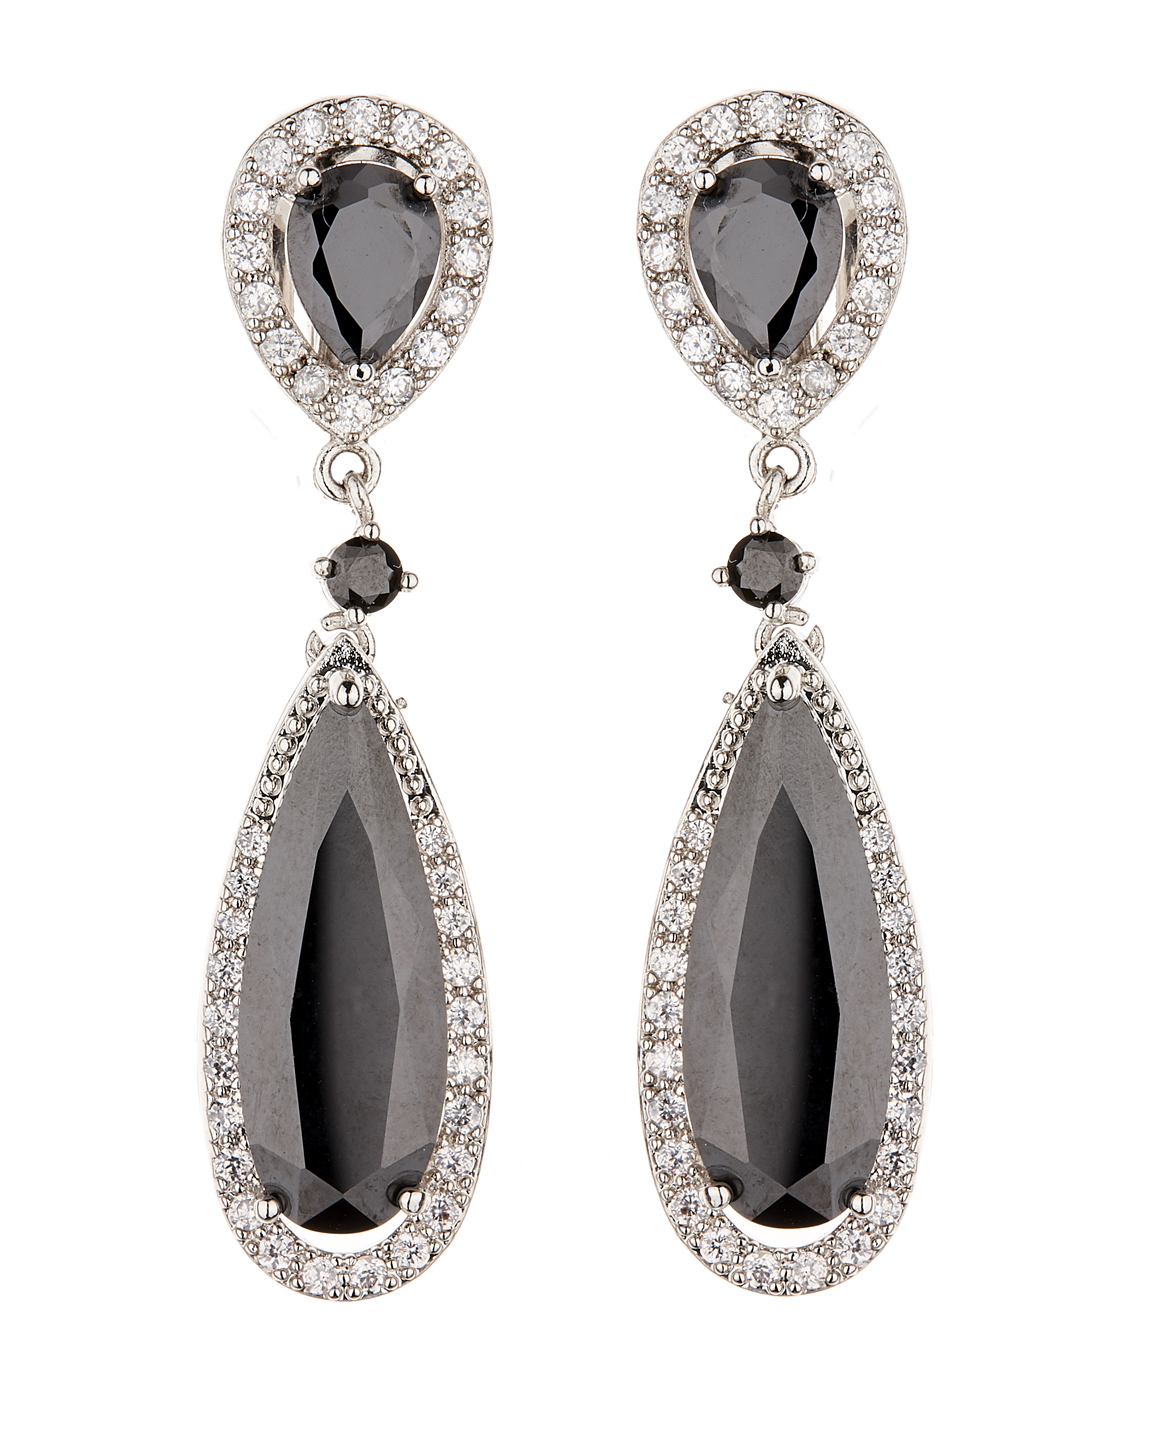 Clip On Earrings - Bano - silver luxury drop earring with black cubic zirconia stones